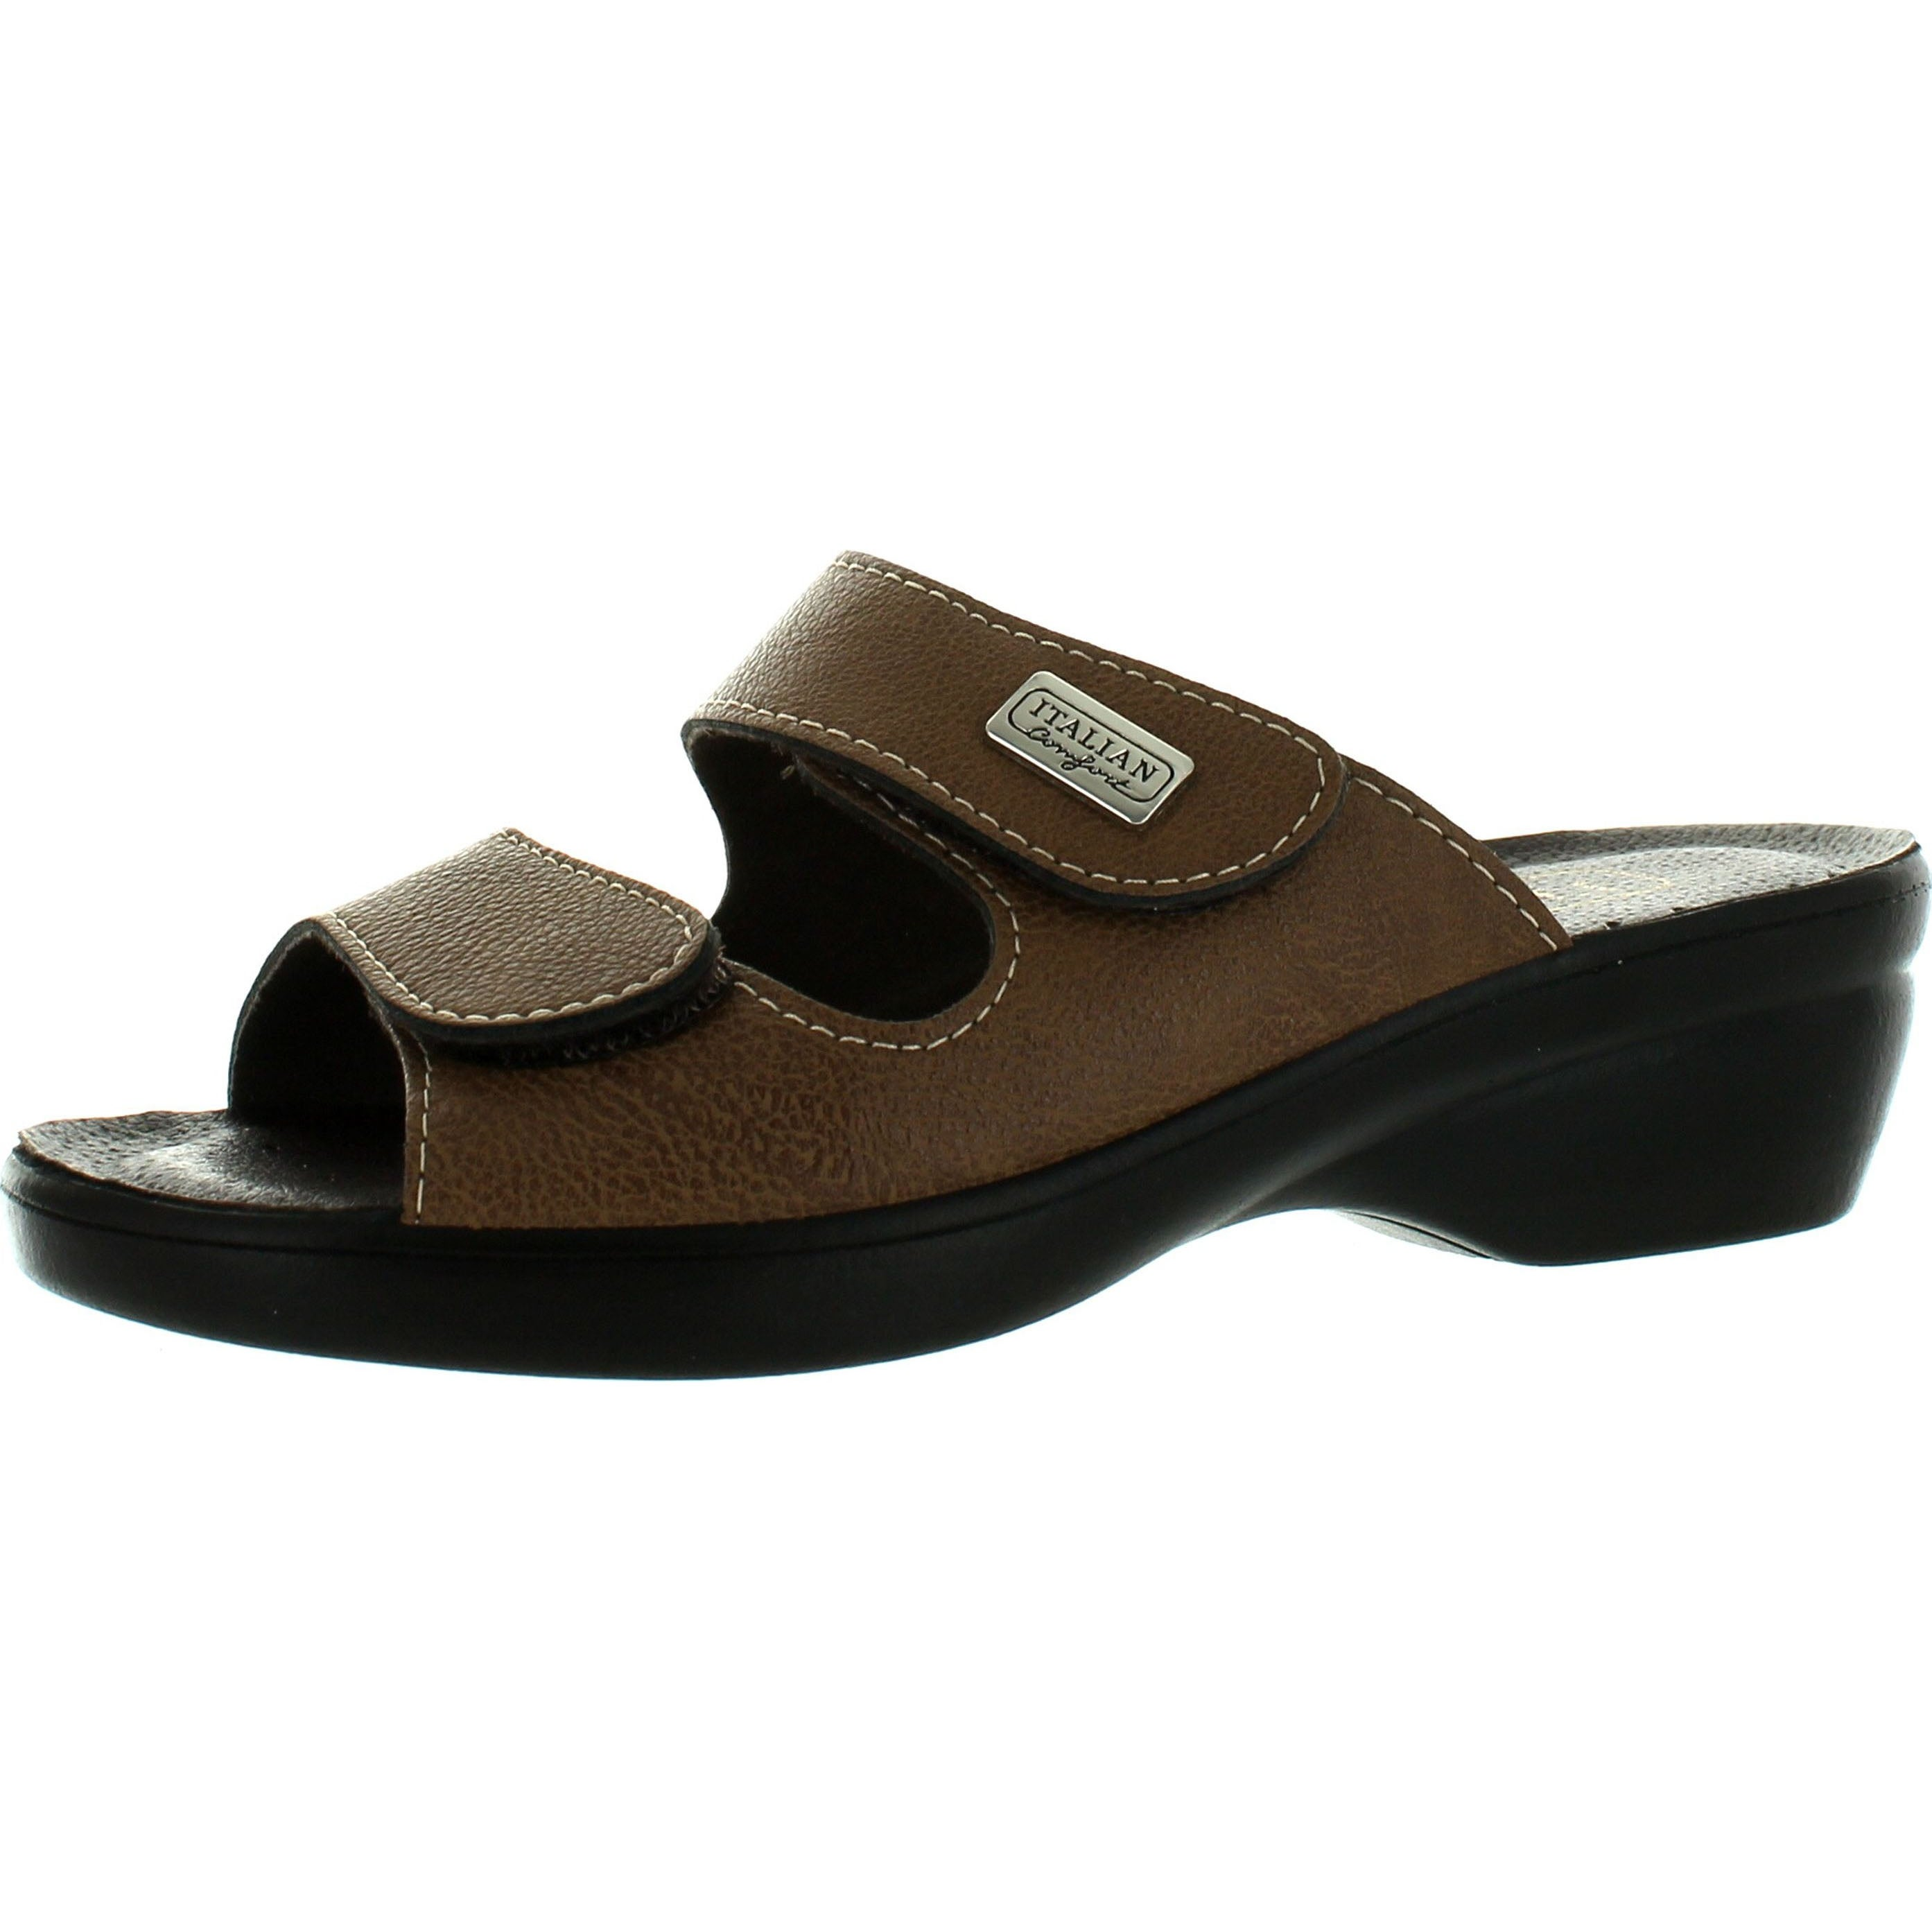 b0669c5b292 Shop Italian Comfort Womens Piermont Made In Italy Comfort Double Strap  Sandals - Free Shipping On Orders Over  45 - Overstock - 14381630